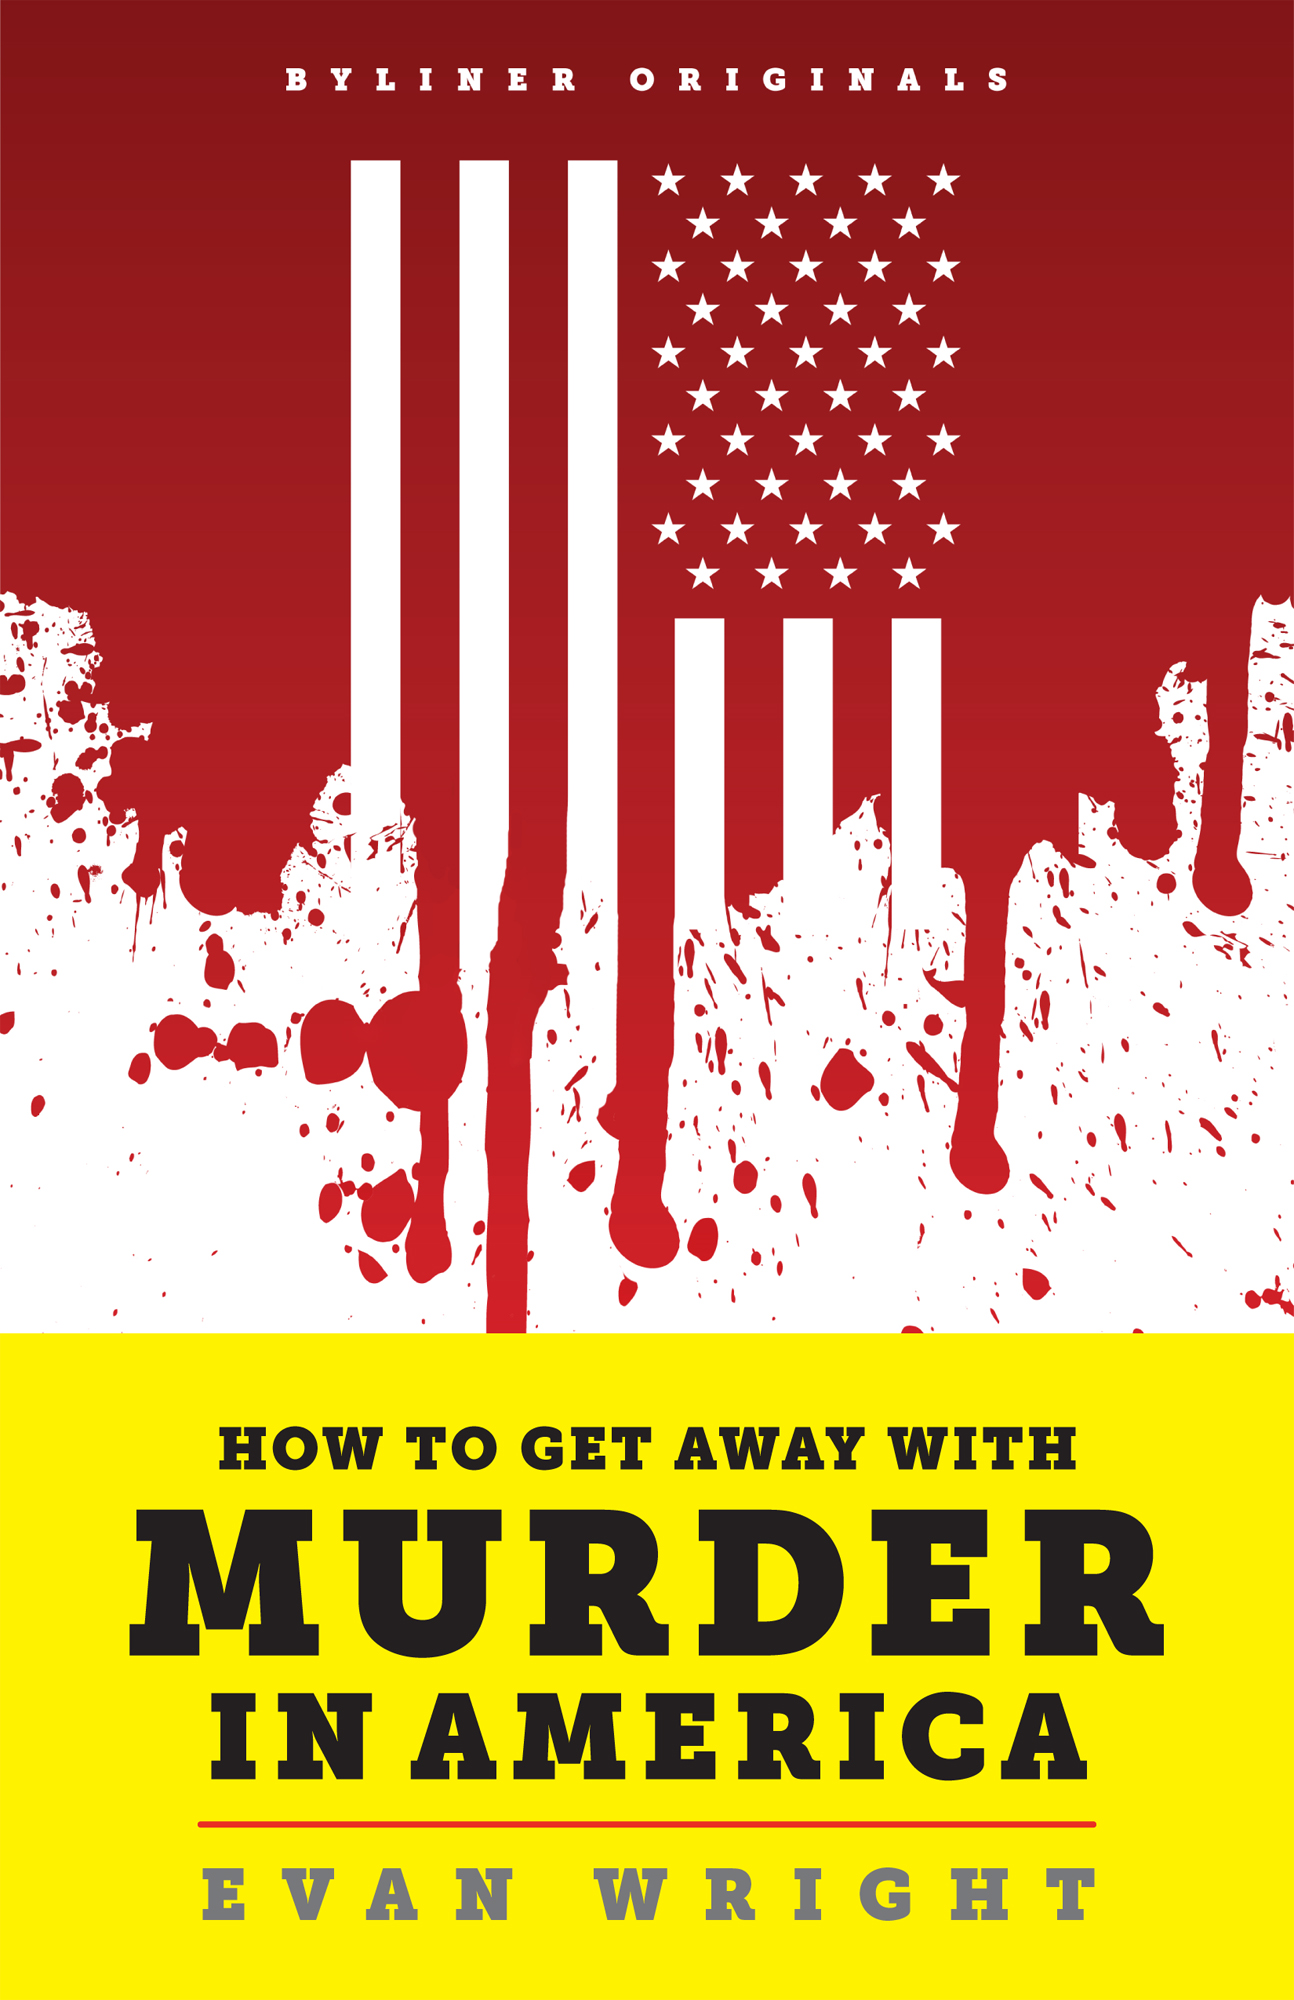 How to Get Away with Murder in America: Drug Lords, Dirty Pols, Obsessed Cops, and the Quiet Man Who Became the CIAs Master Killer